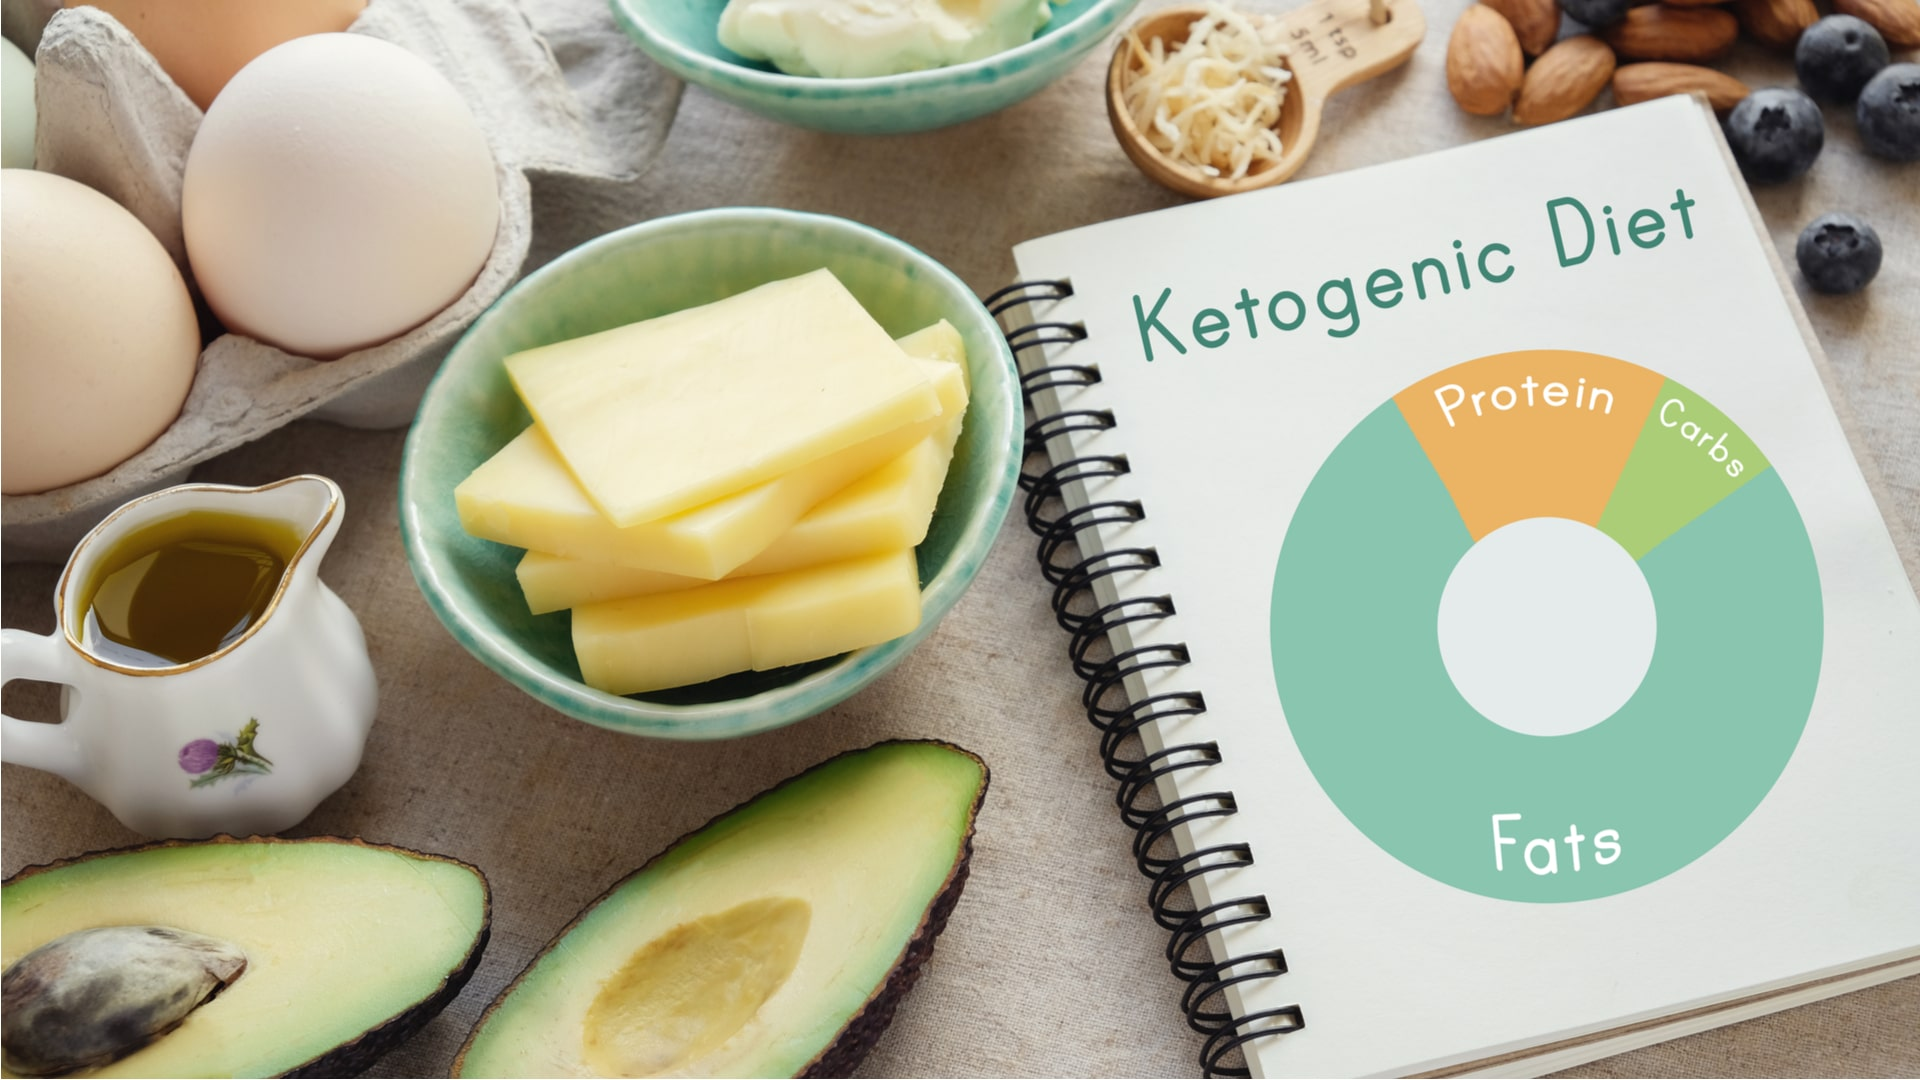 Keto Diet Helping Autoimmune Diseases?